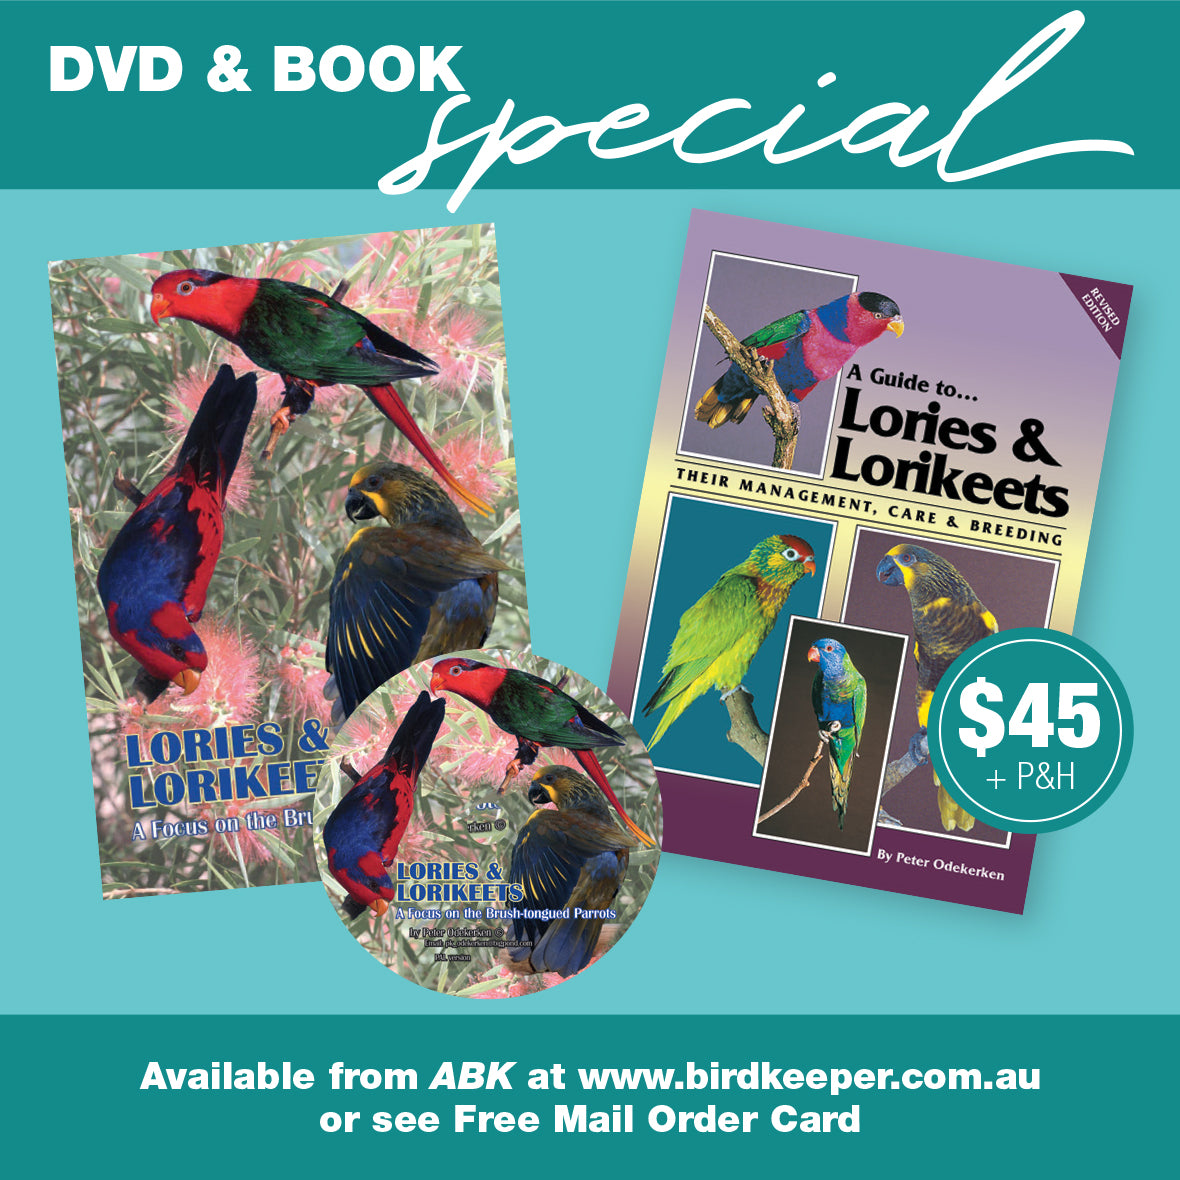 A Guide to Lories and Lorikeets (Revised Edition) & DVD Package